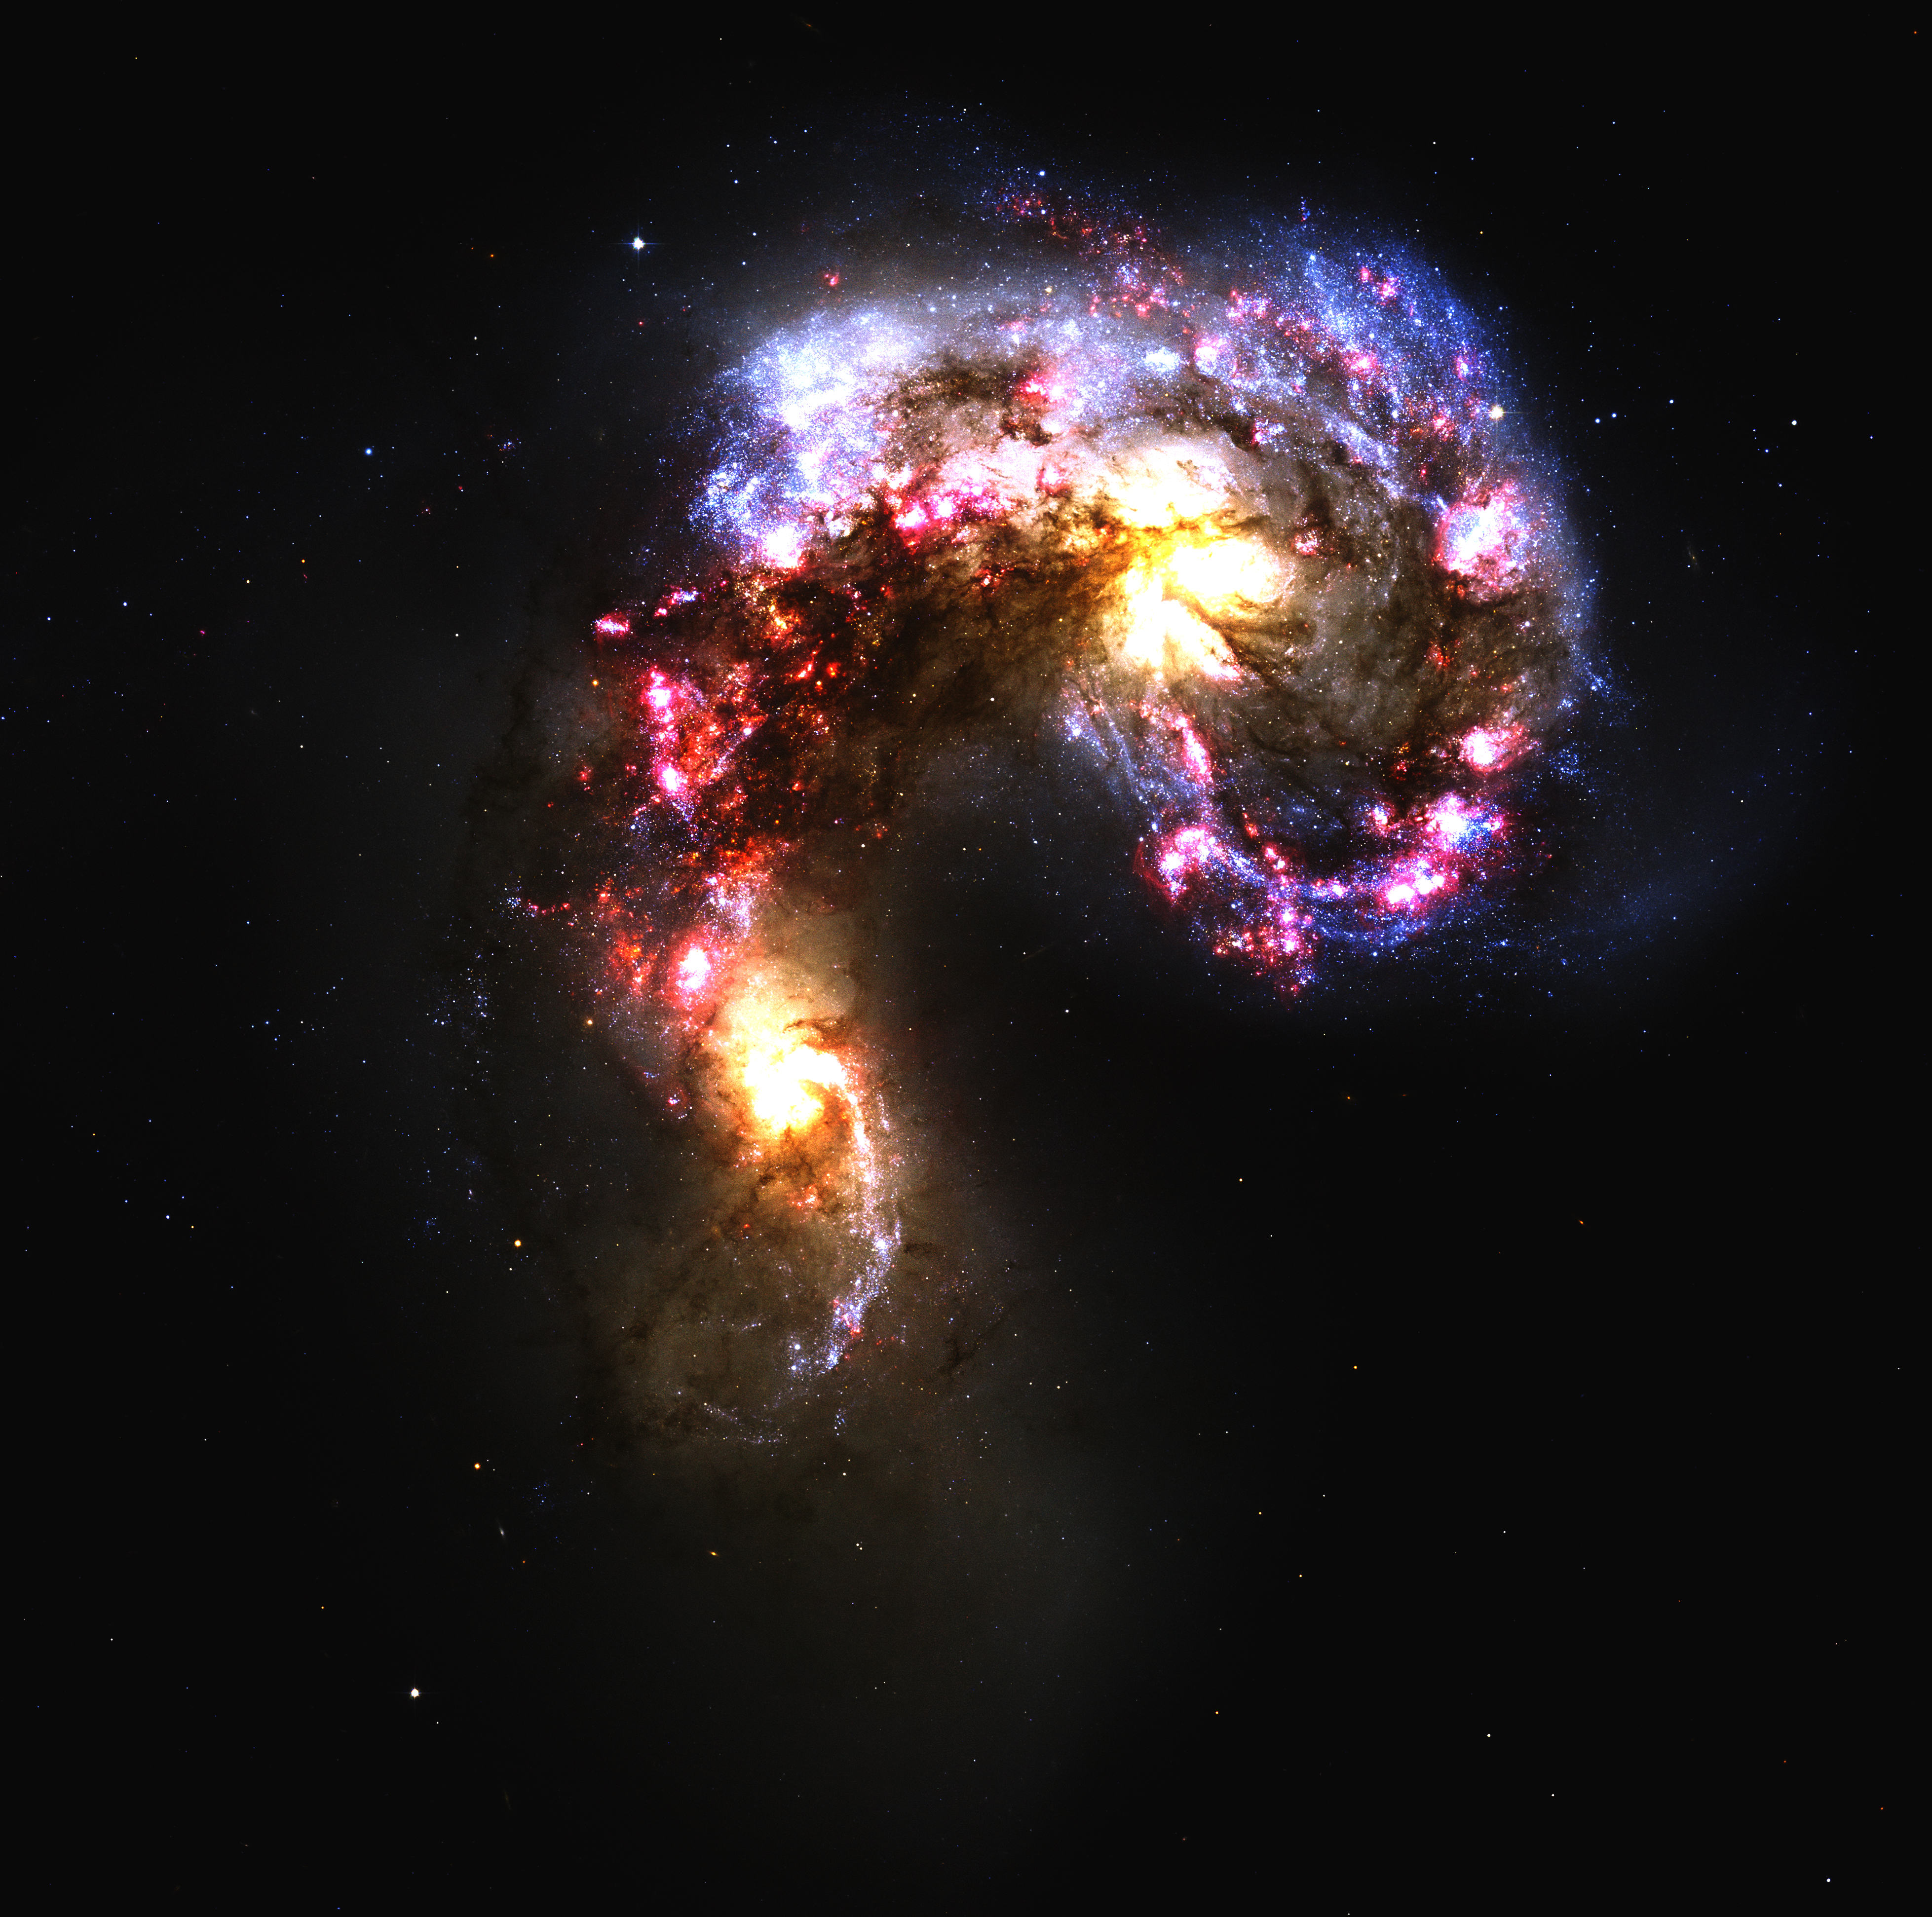 Antennae Galaxy by NASA (touch ups by hadsed) - Desktop ...